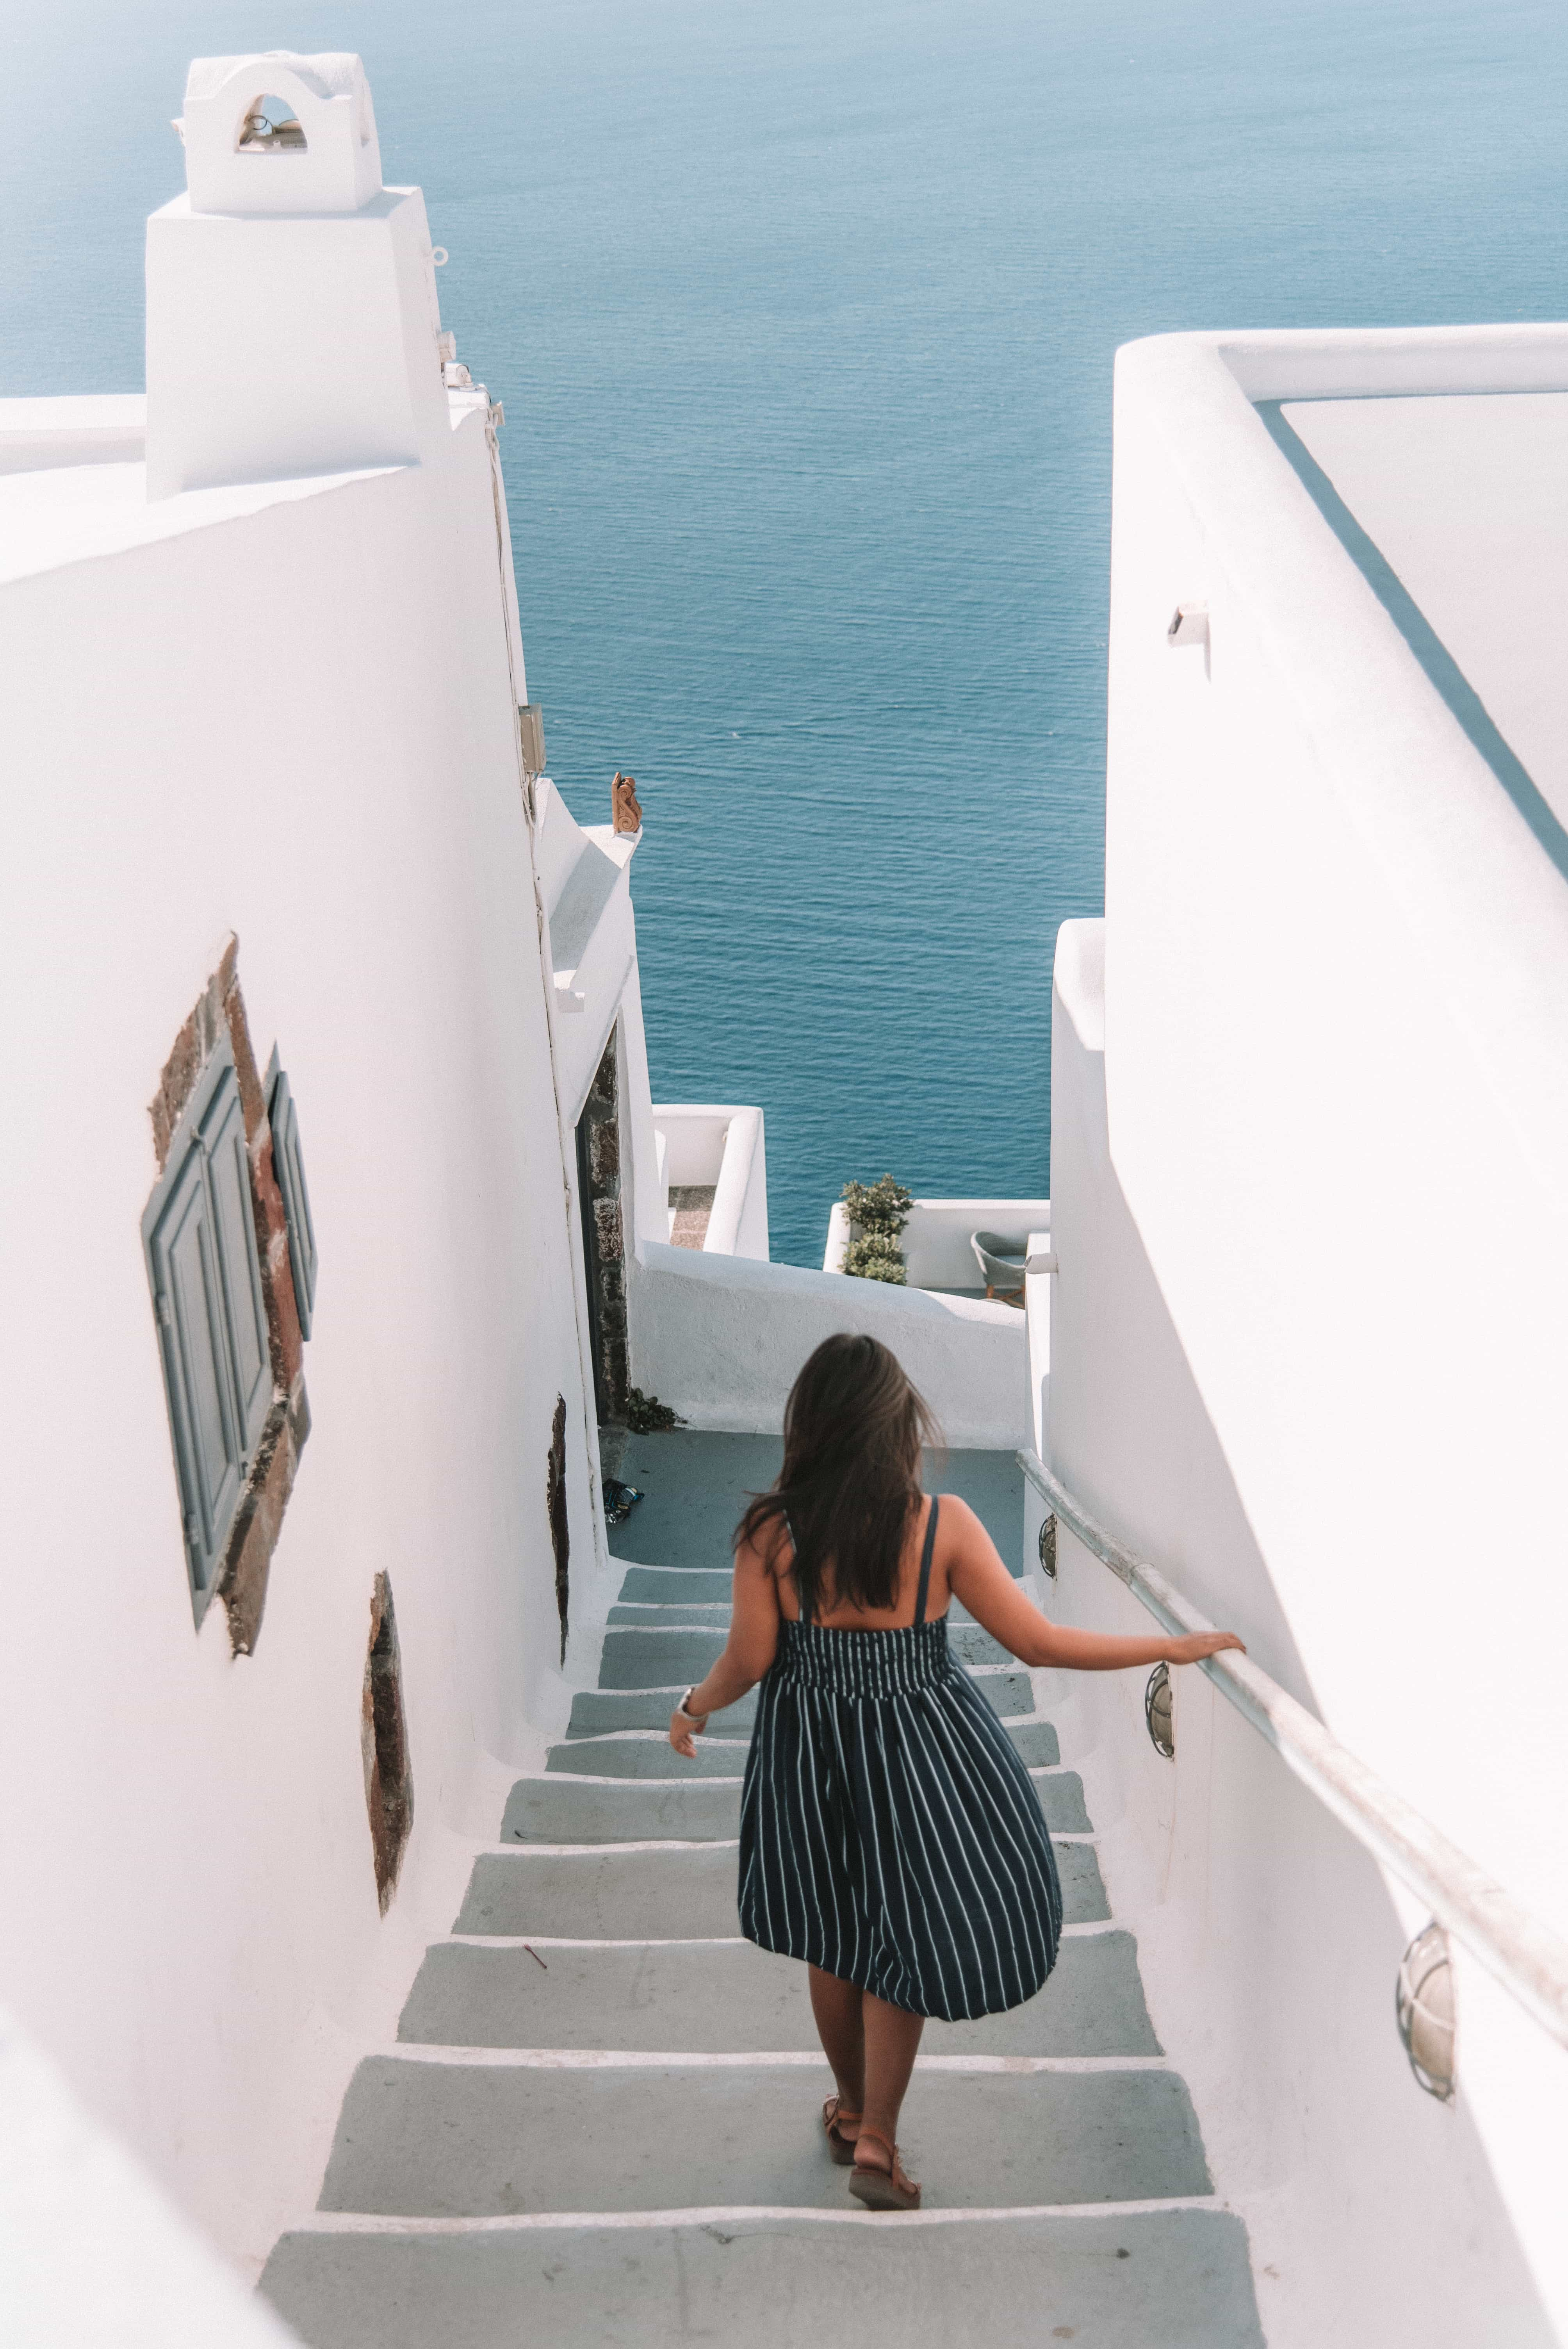 Things to do in Santorini, Places to visit in Santorini, Beaches in Santorini, meltemi village, fira, oia